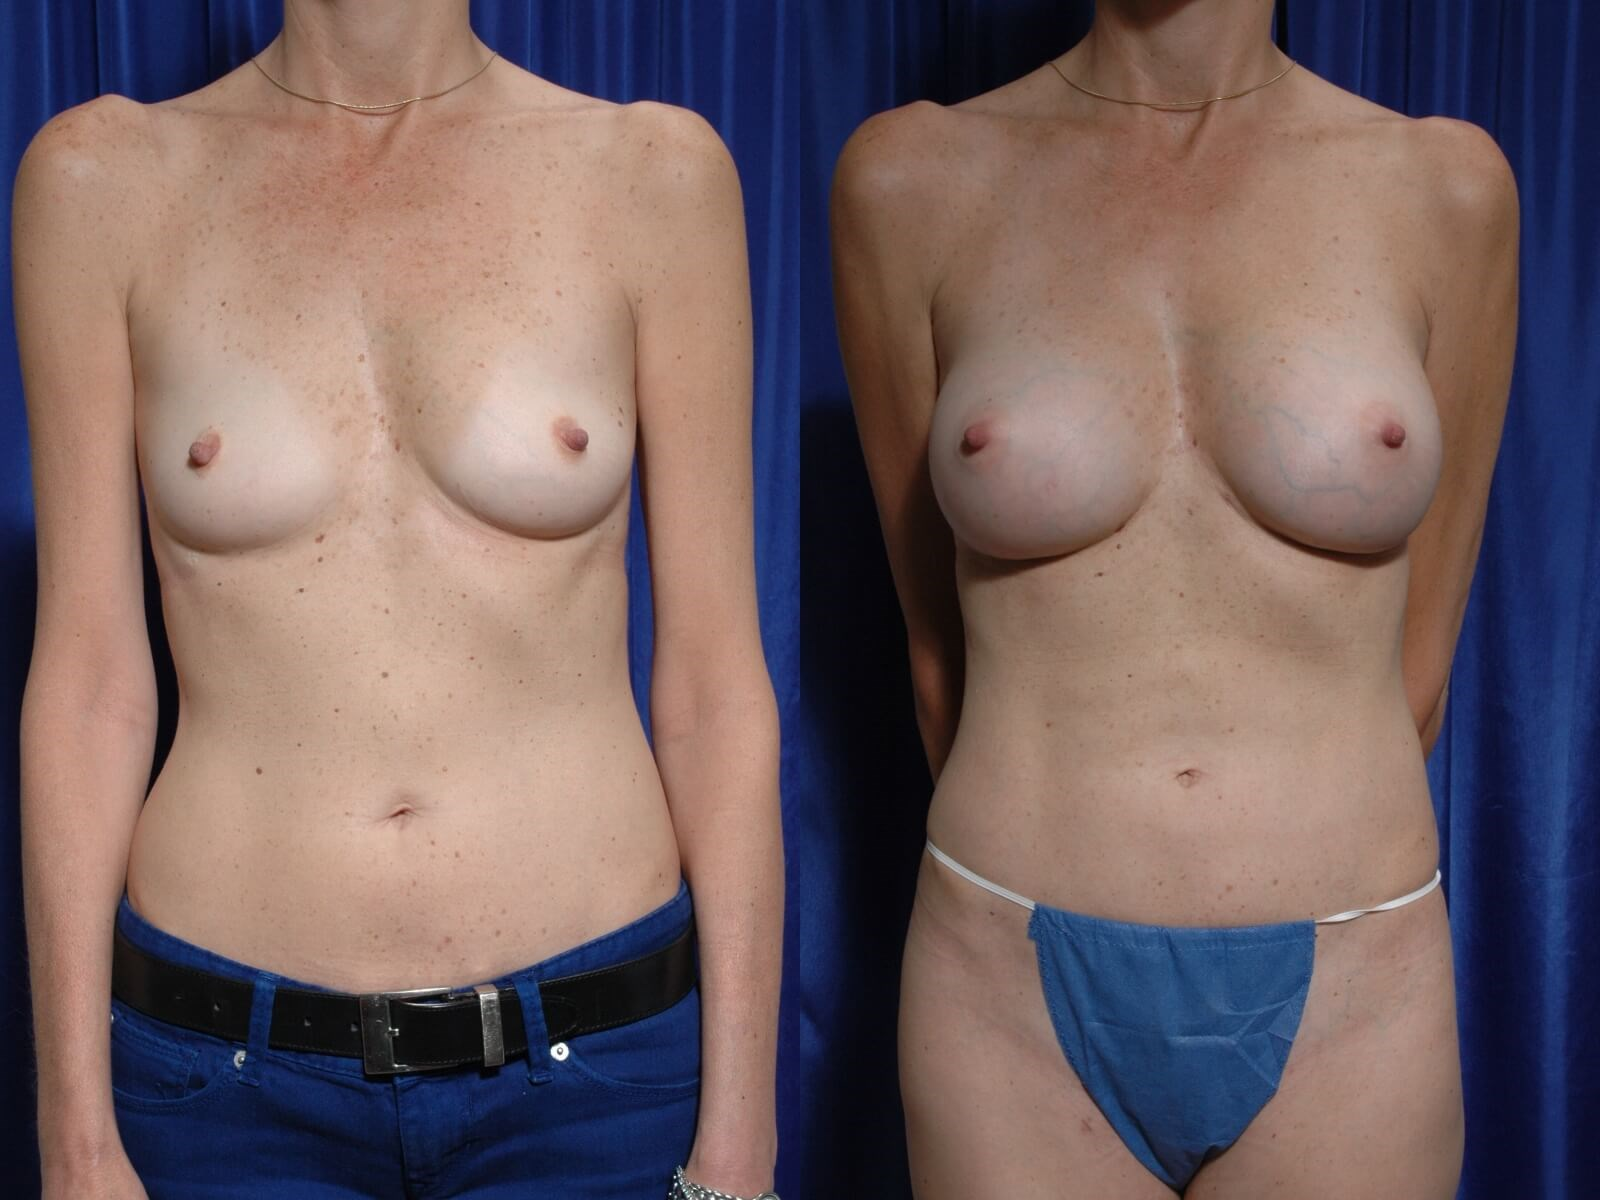 Fat to Breasts w/ Implants Front View Comparison